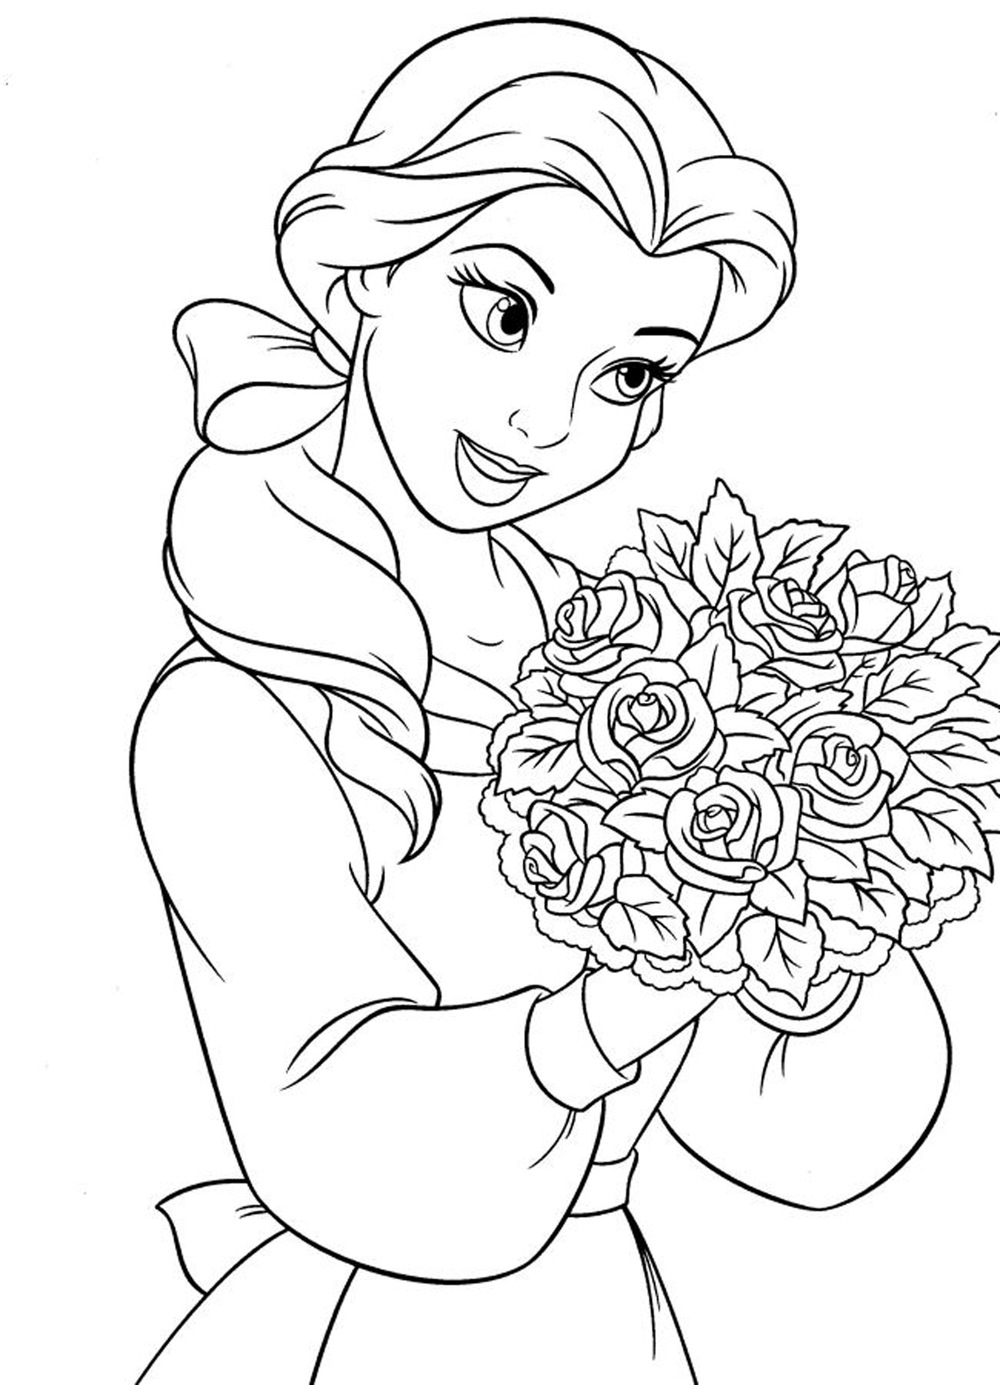 Princess coloring pages pdf